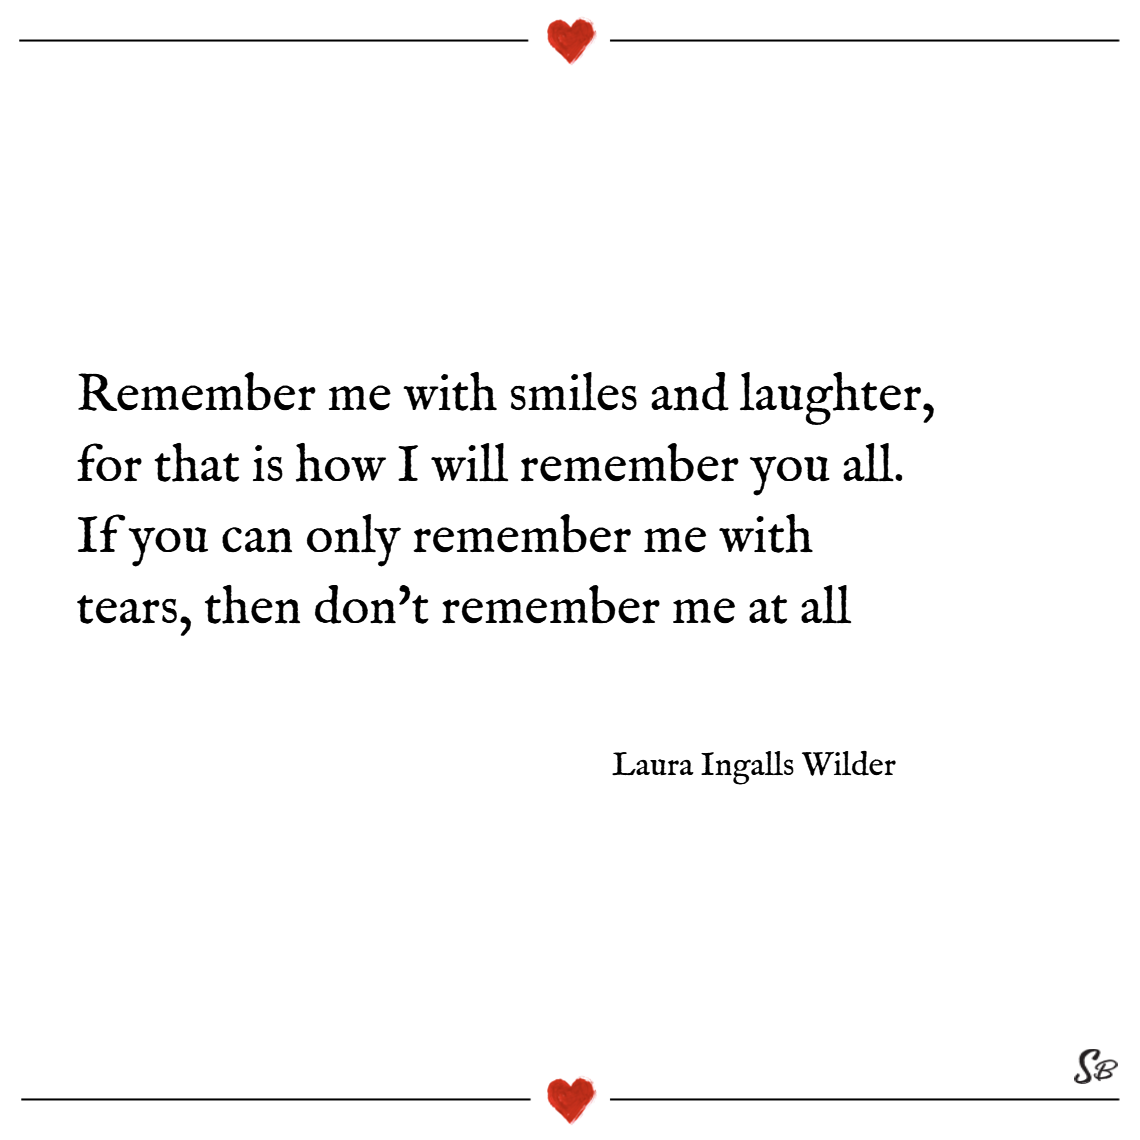 Remember me with smiles and laughter, for that is how i will remember you all. if you can only remember me with tears, then don't remember me at all. – laura ingalls wilder sympathy quotes